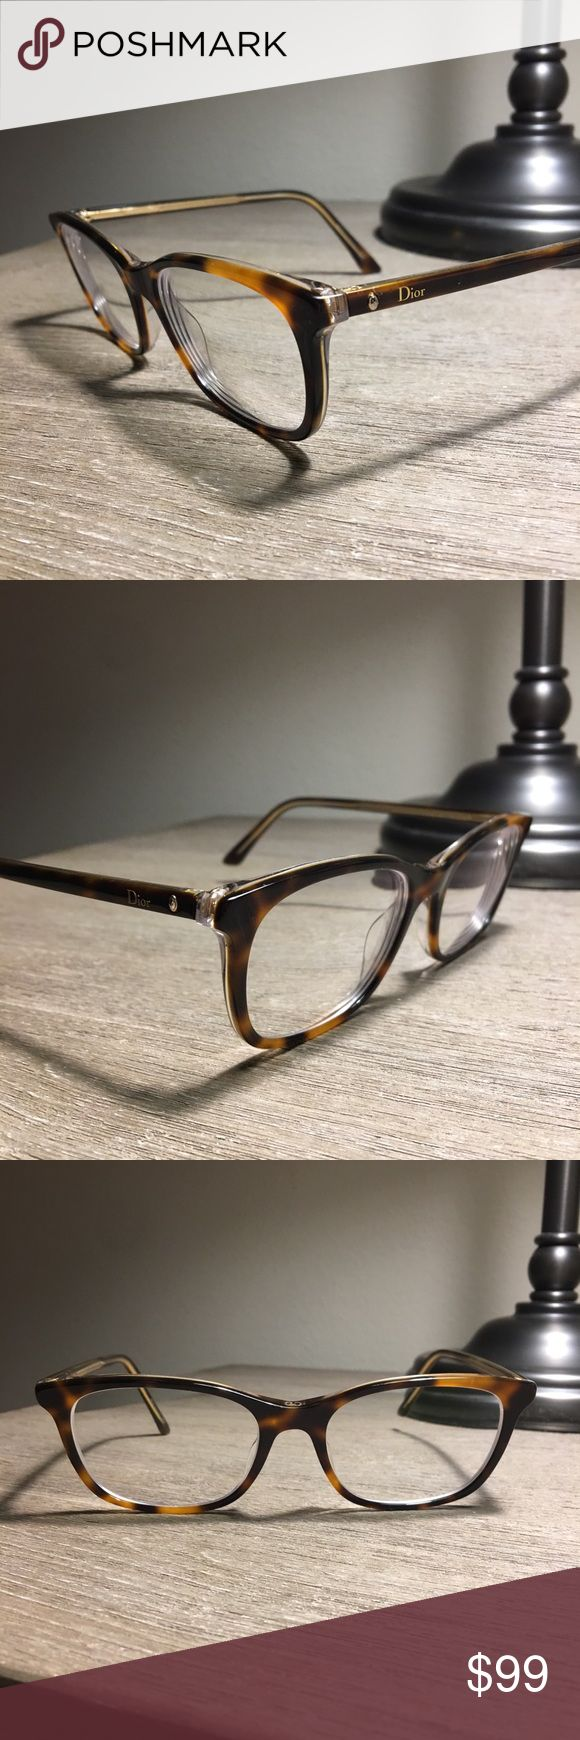 🌼🍃Christian Dior eyeglasses New condition genuine Christian Dior tortoise eyeglasses. You will receive SO many compliments in these! Contains my prescription - you will need to replace with your own. Christian Dior Accessories Glasses